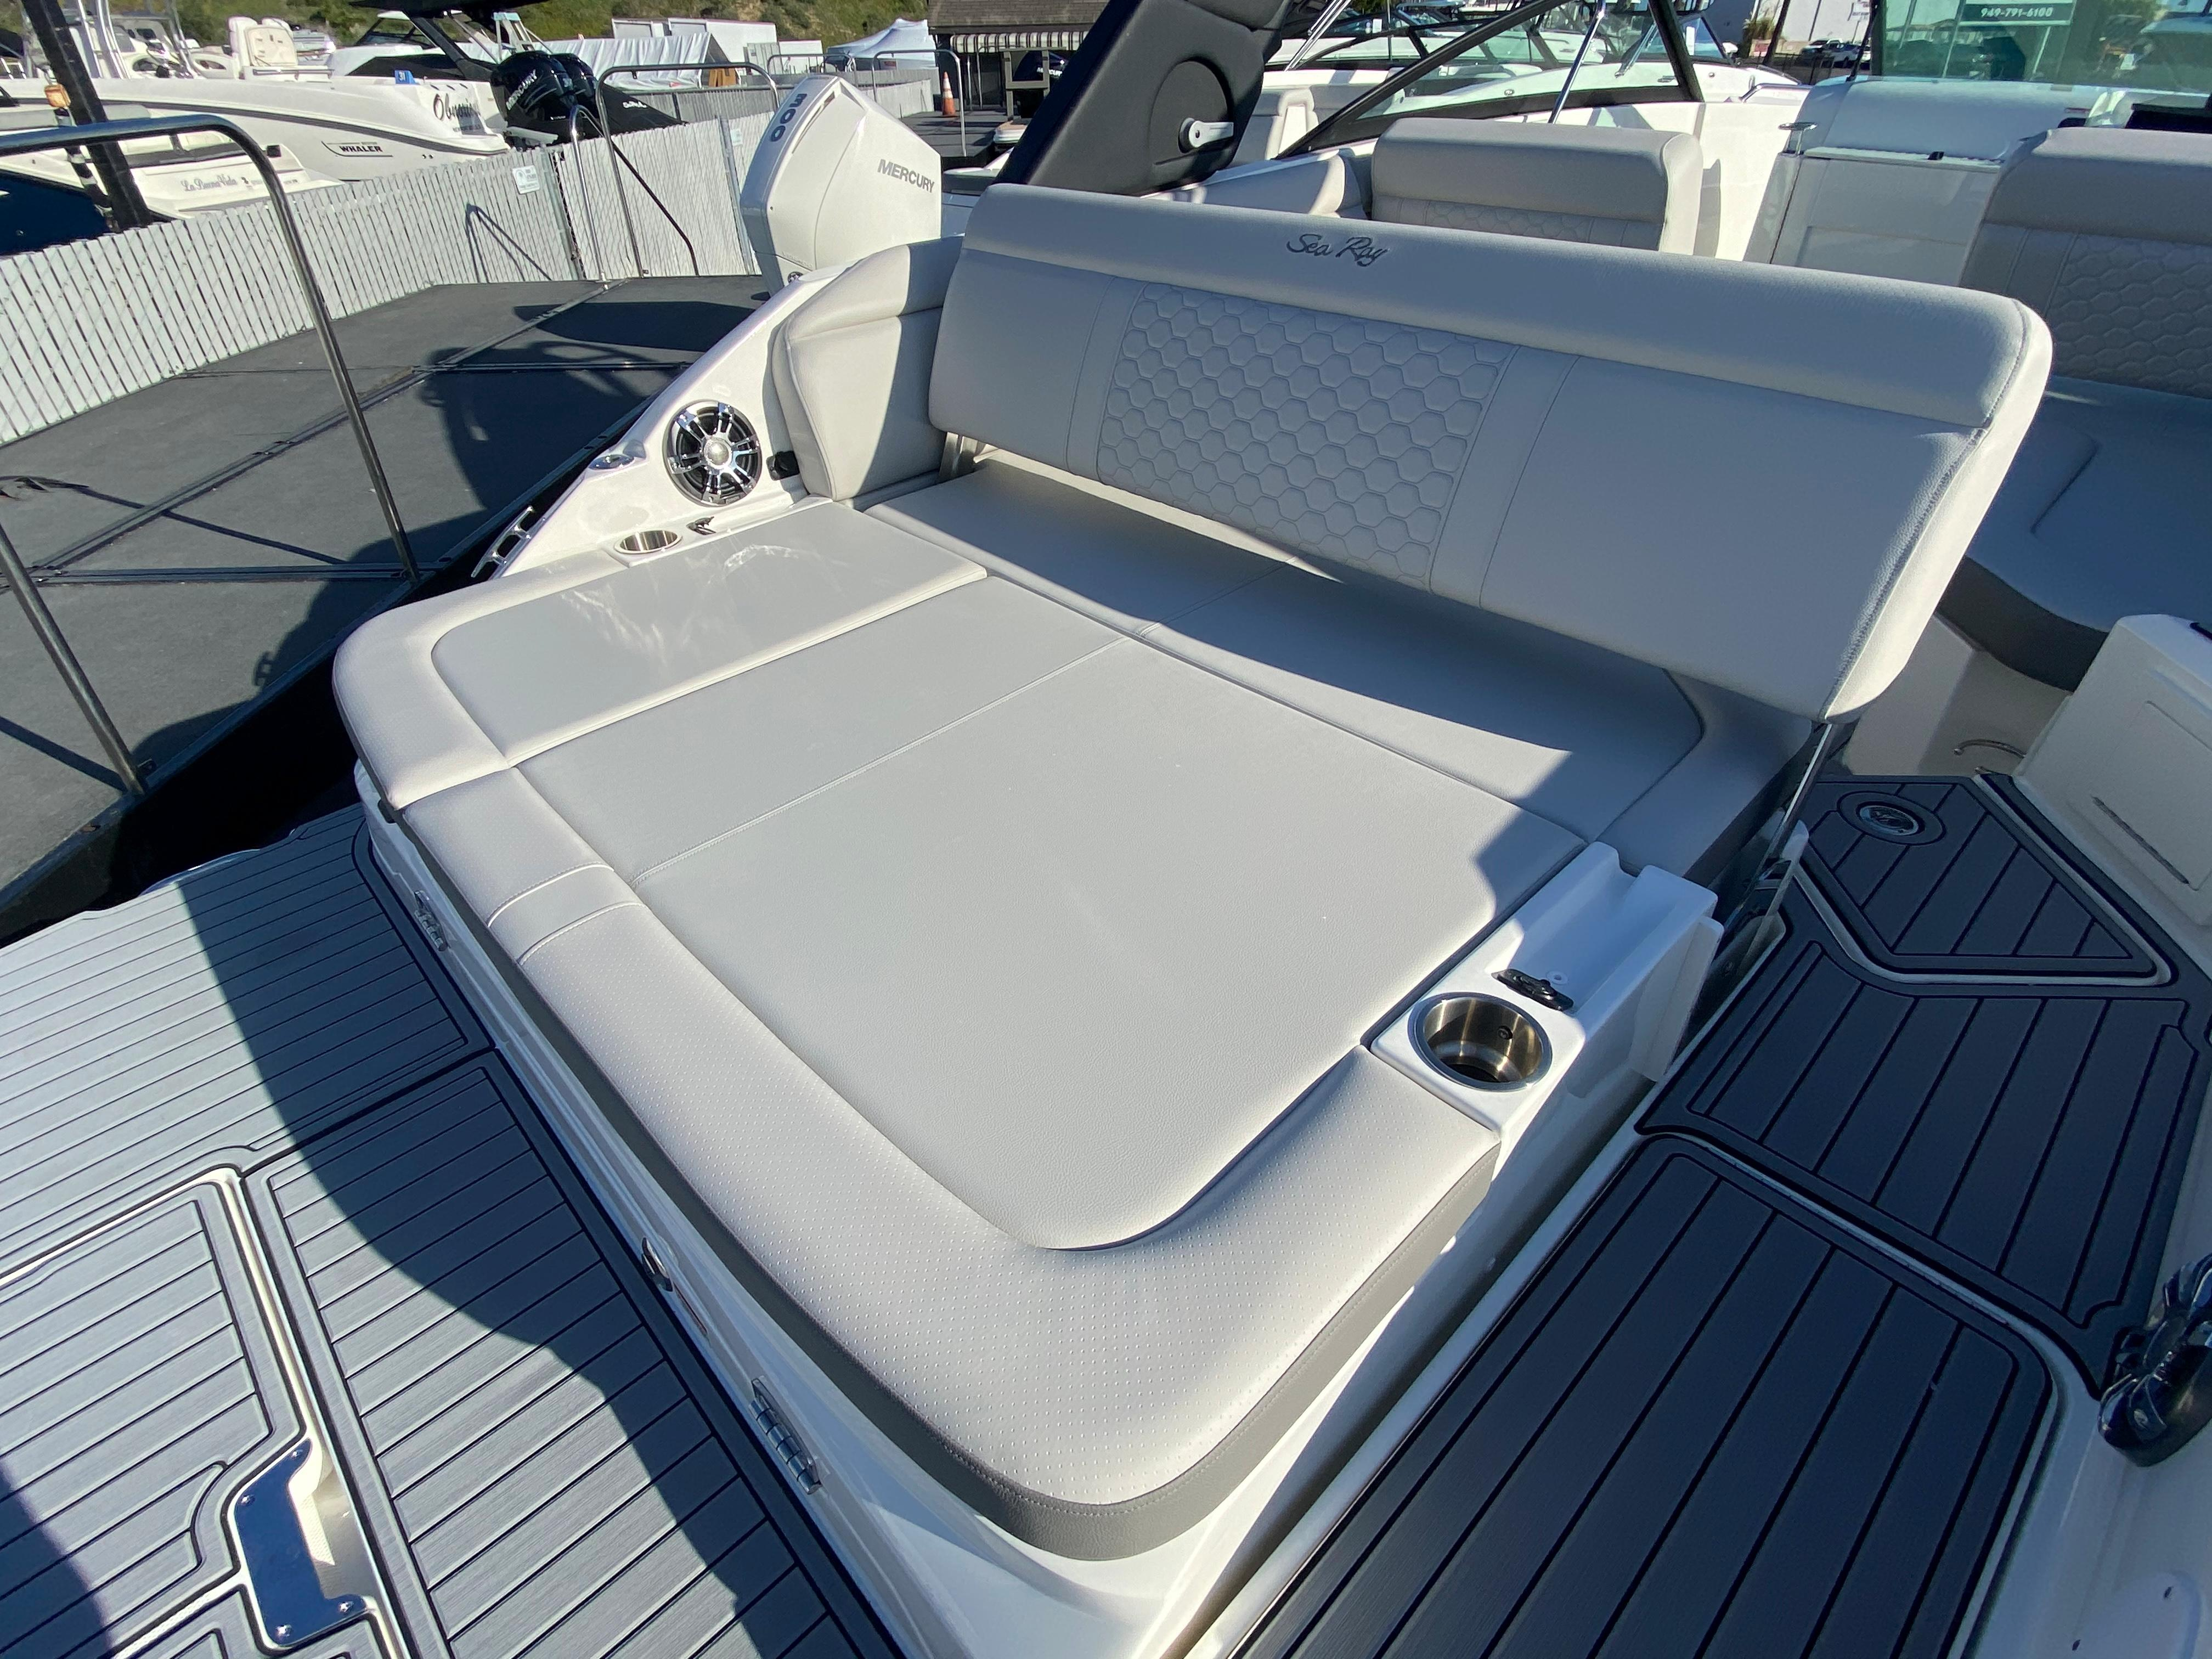 2021 Sea Ray SDX 250 #S1909B inventory image at Sun Country Coastal in Newport Beach